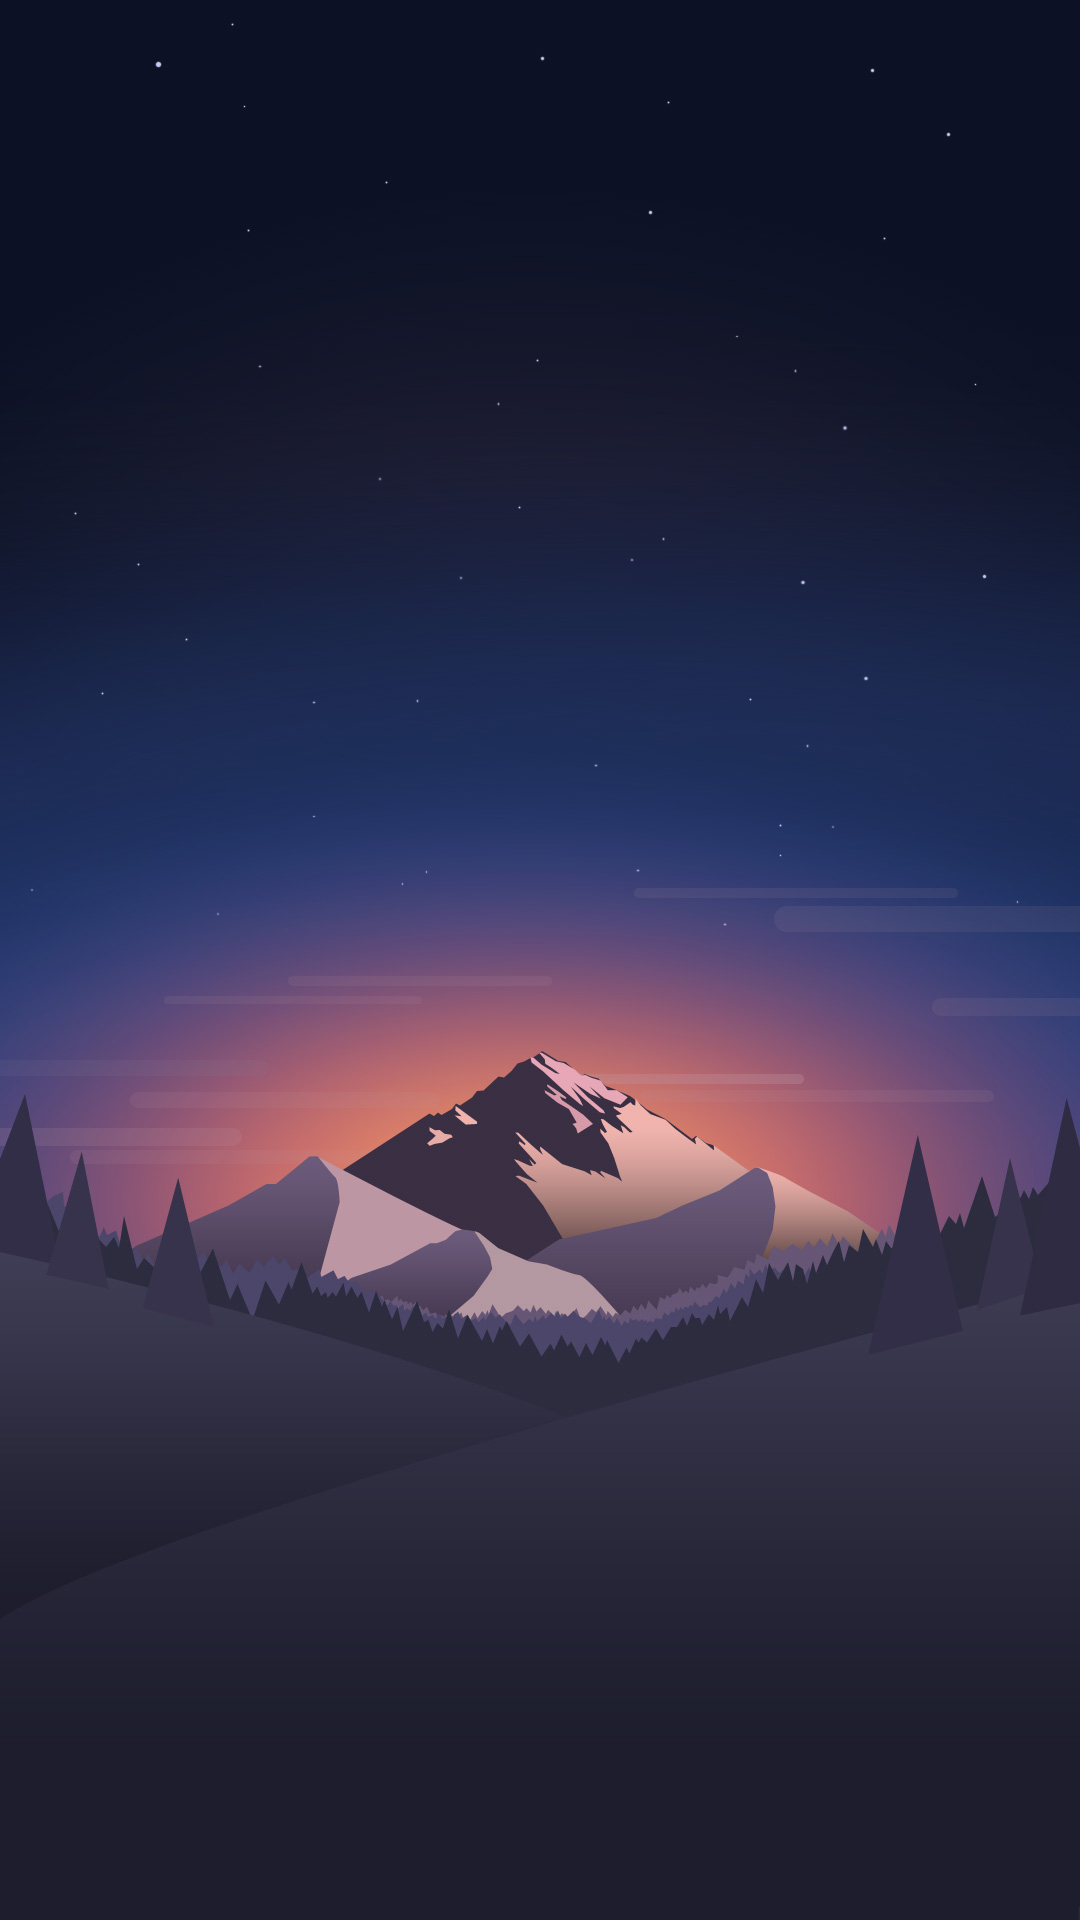 Low Poly Wallpapers Desk Phone Minimal Wallpaper Landscape Wallpaper Minimalist Wallpaper